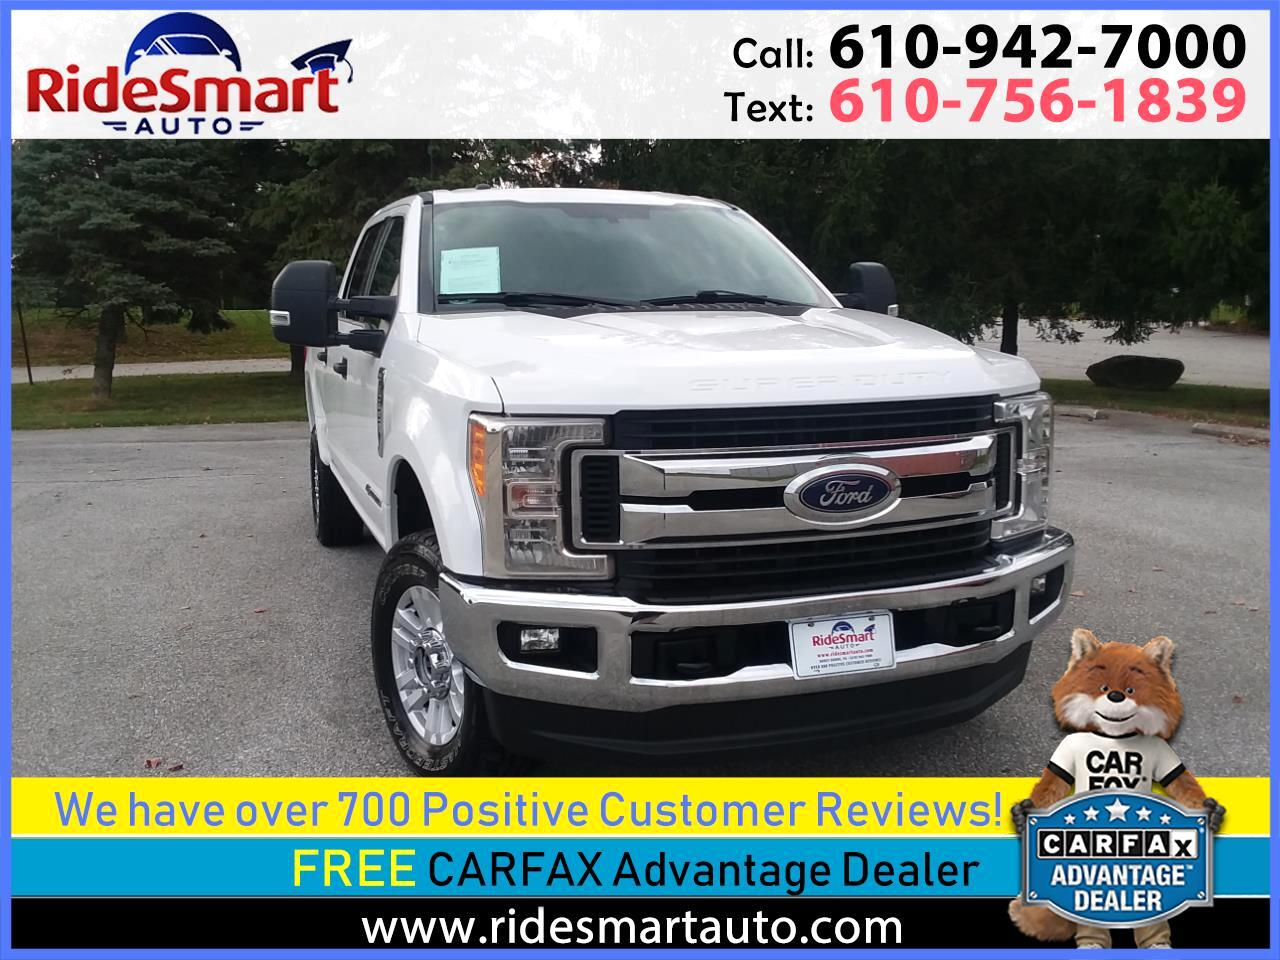 2017 Ford F-250 SD XLT Crew Cab Long Bed 4WD Diesel